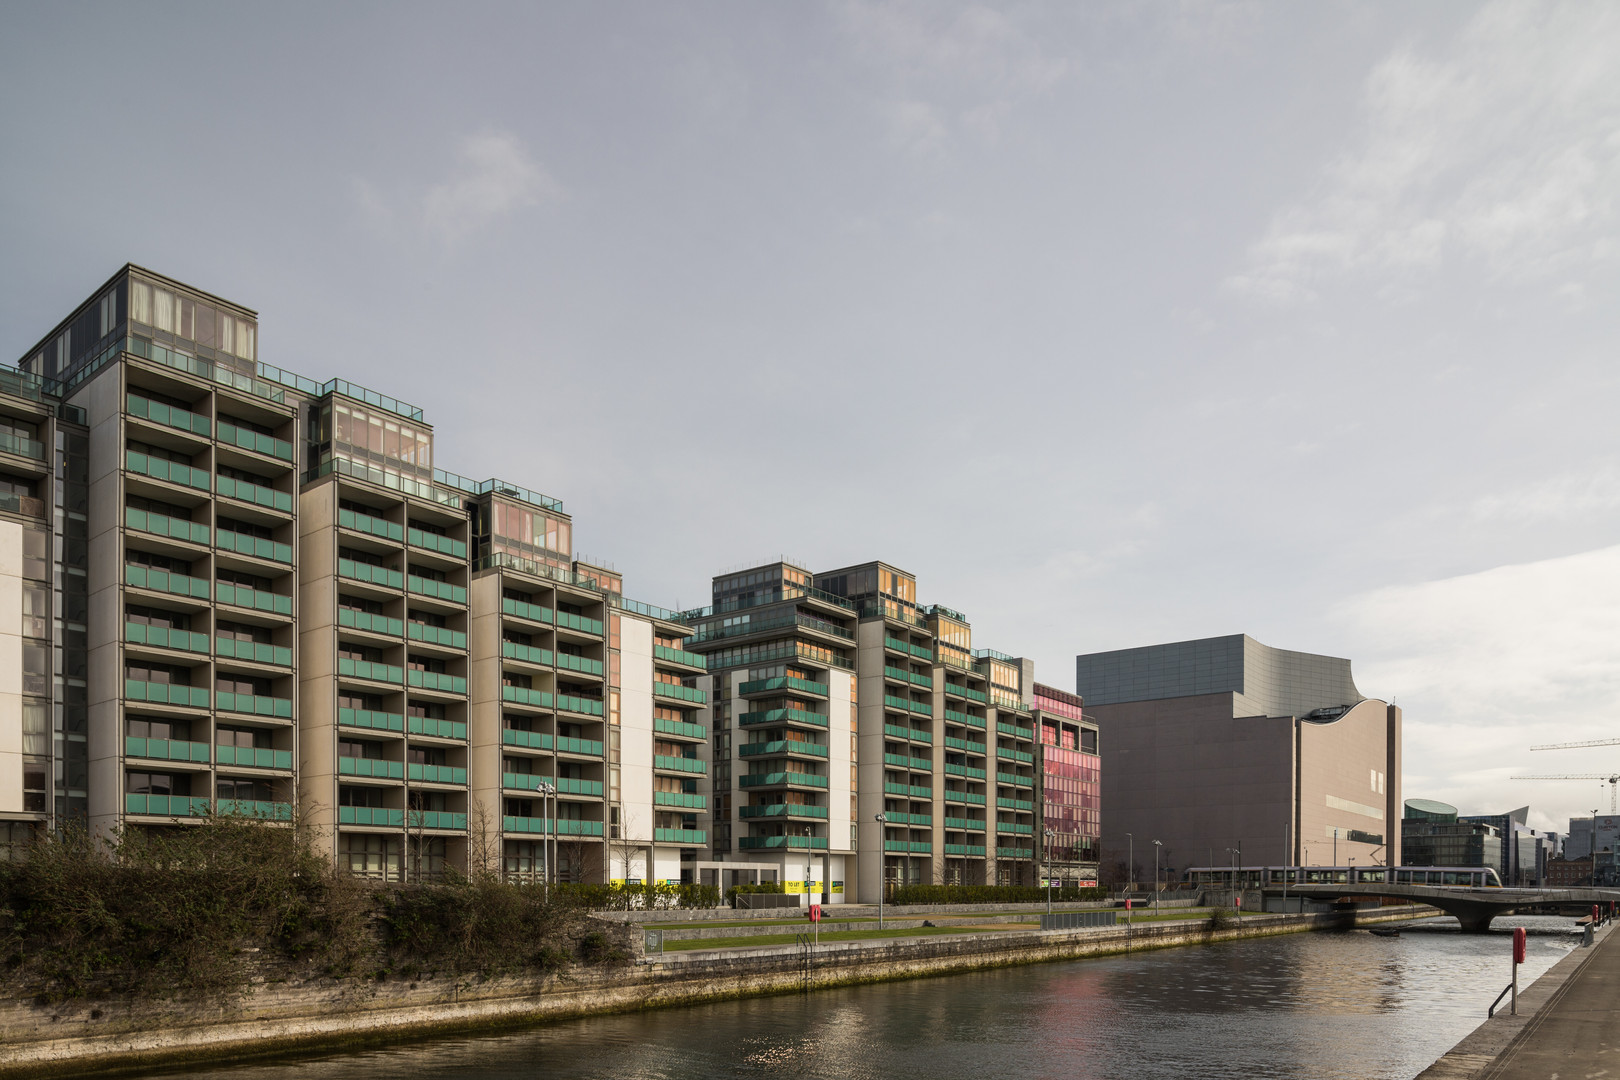 External view of the Spencer Dock Apartments in Dublin from Linear Park with Luas crossing